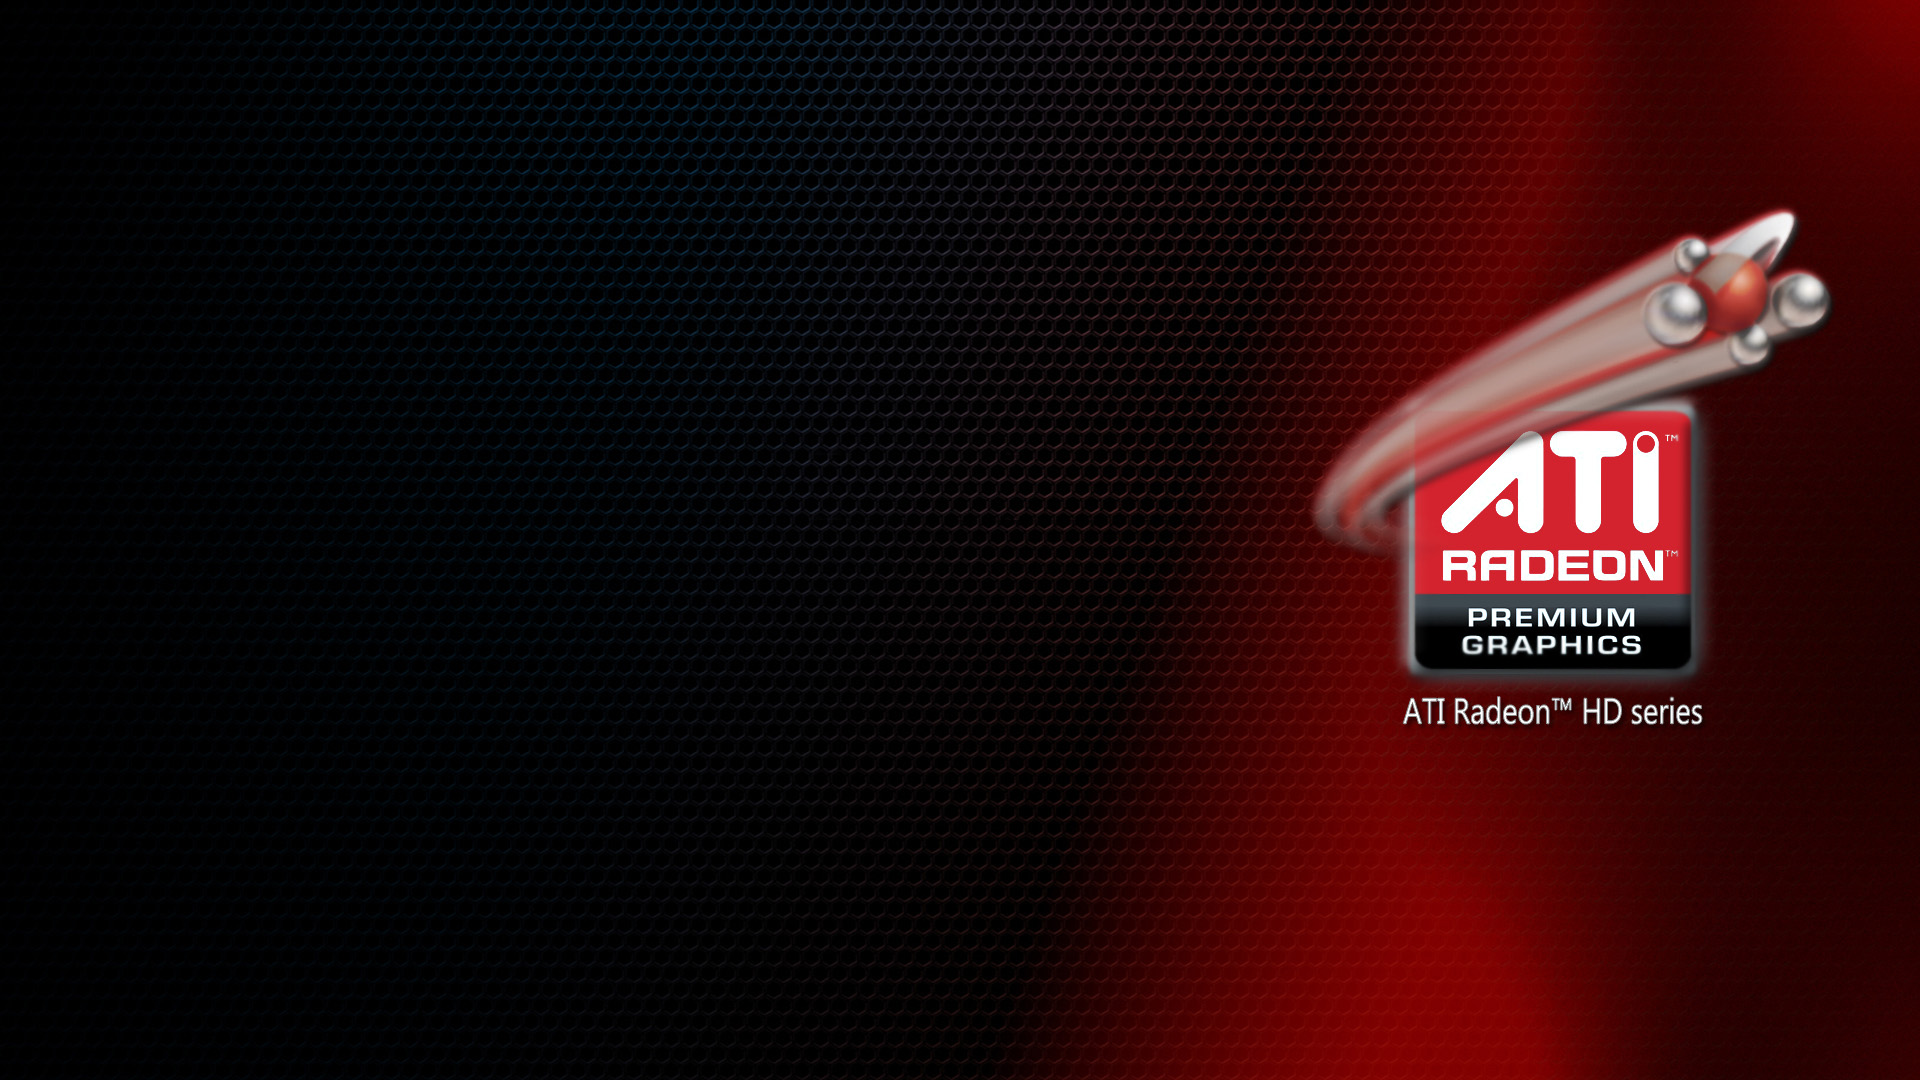 amd radeon wallpapers hd - photo #10